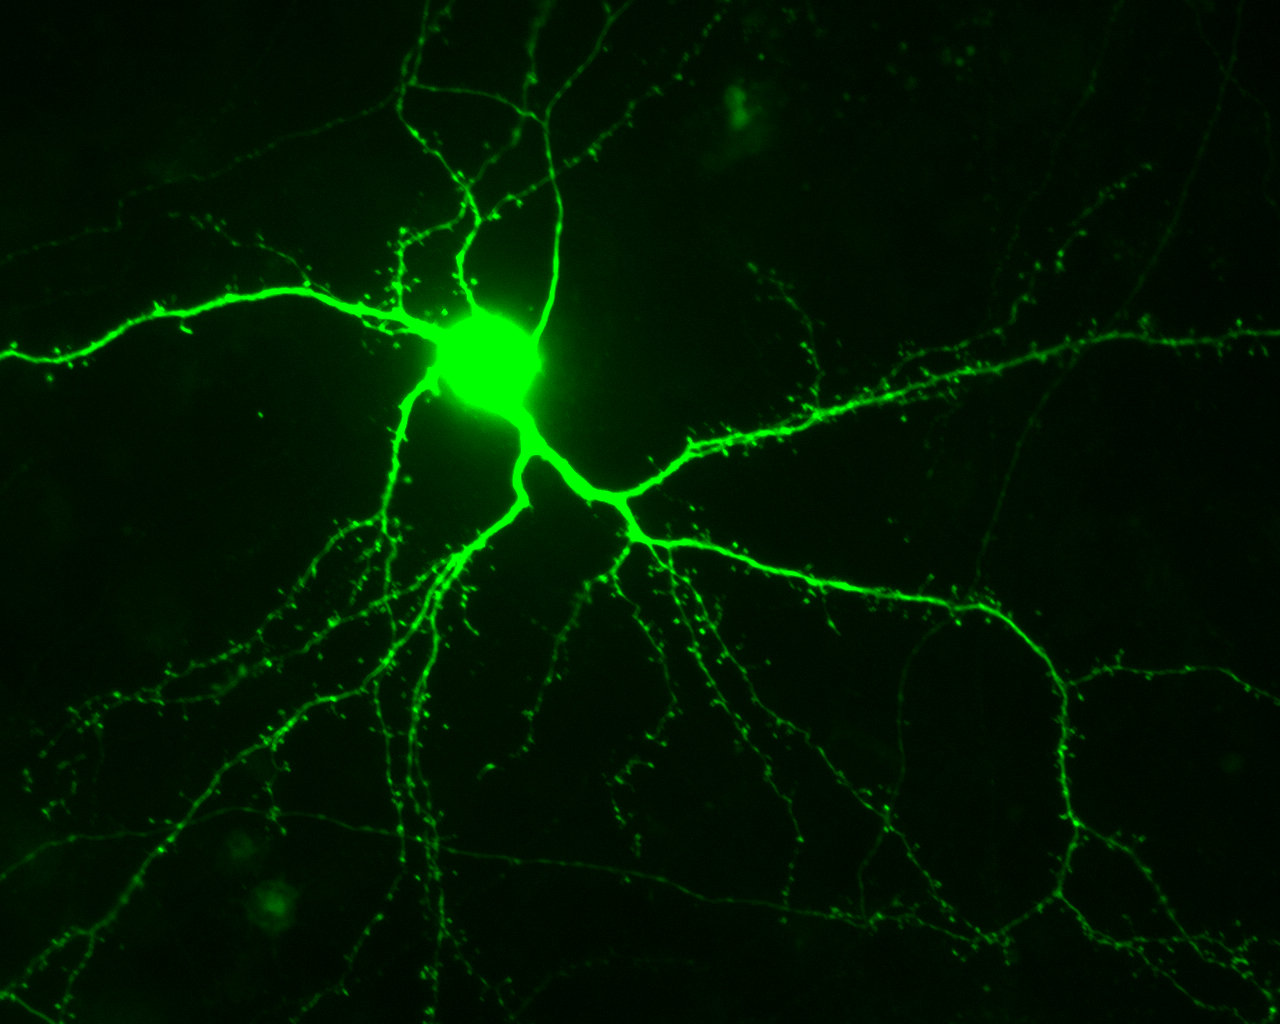 Chemical Reaction Keeps Stroke Damaged Brain From